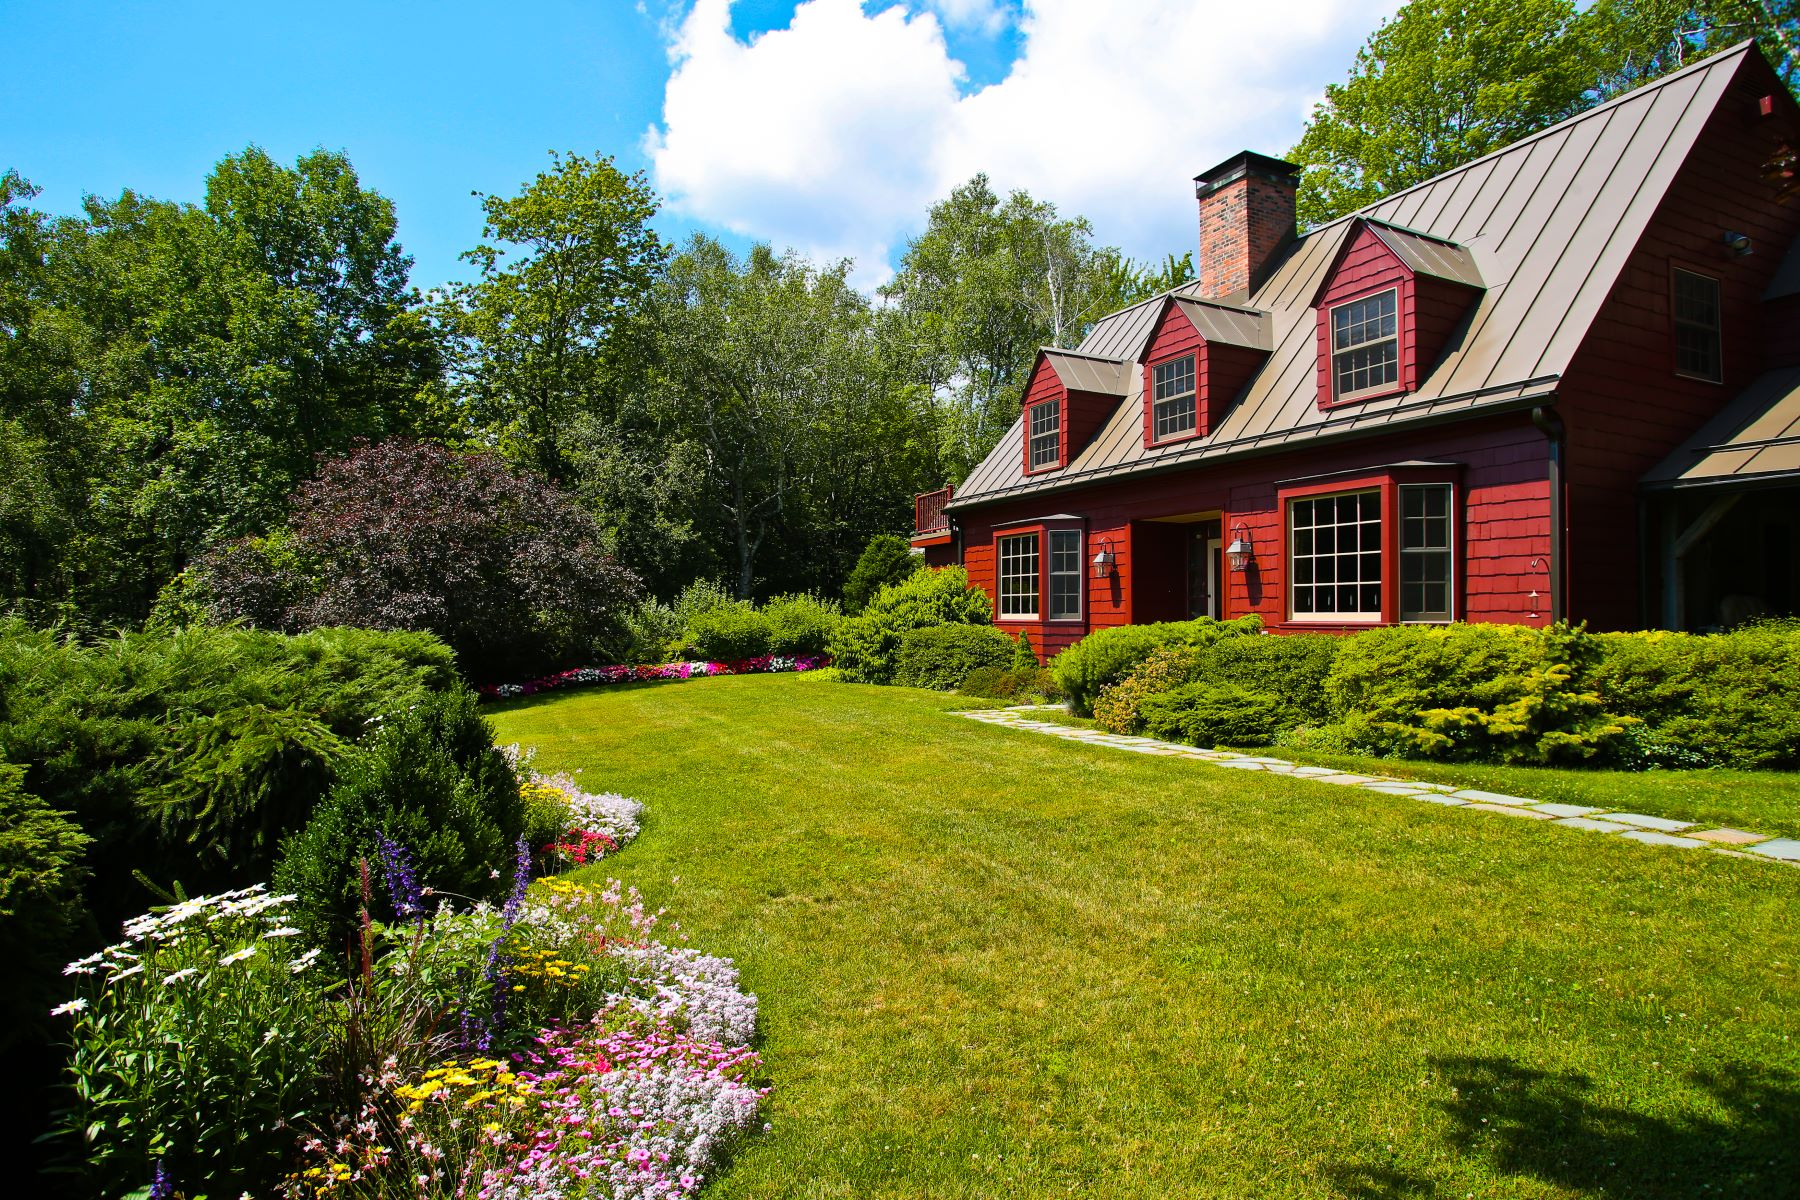 Eensgezinswoning voor Verkoop een t 100 Acre Family Compound: Stream, Ponds, Stables with Guesthouse 759 Hancock Rd Williamstown, Massachusetts 01267 Verenigde Staten